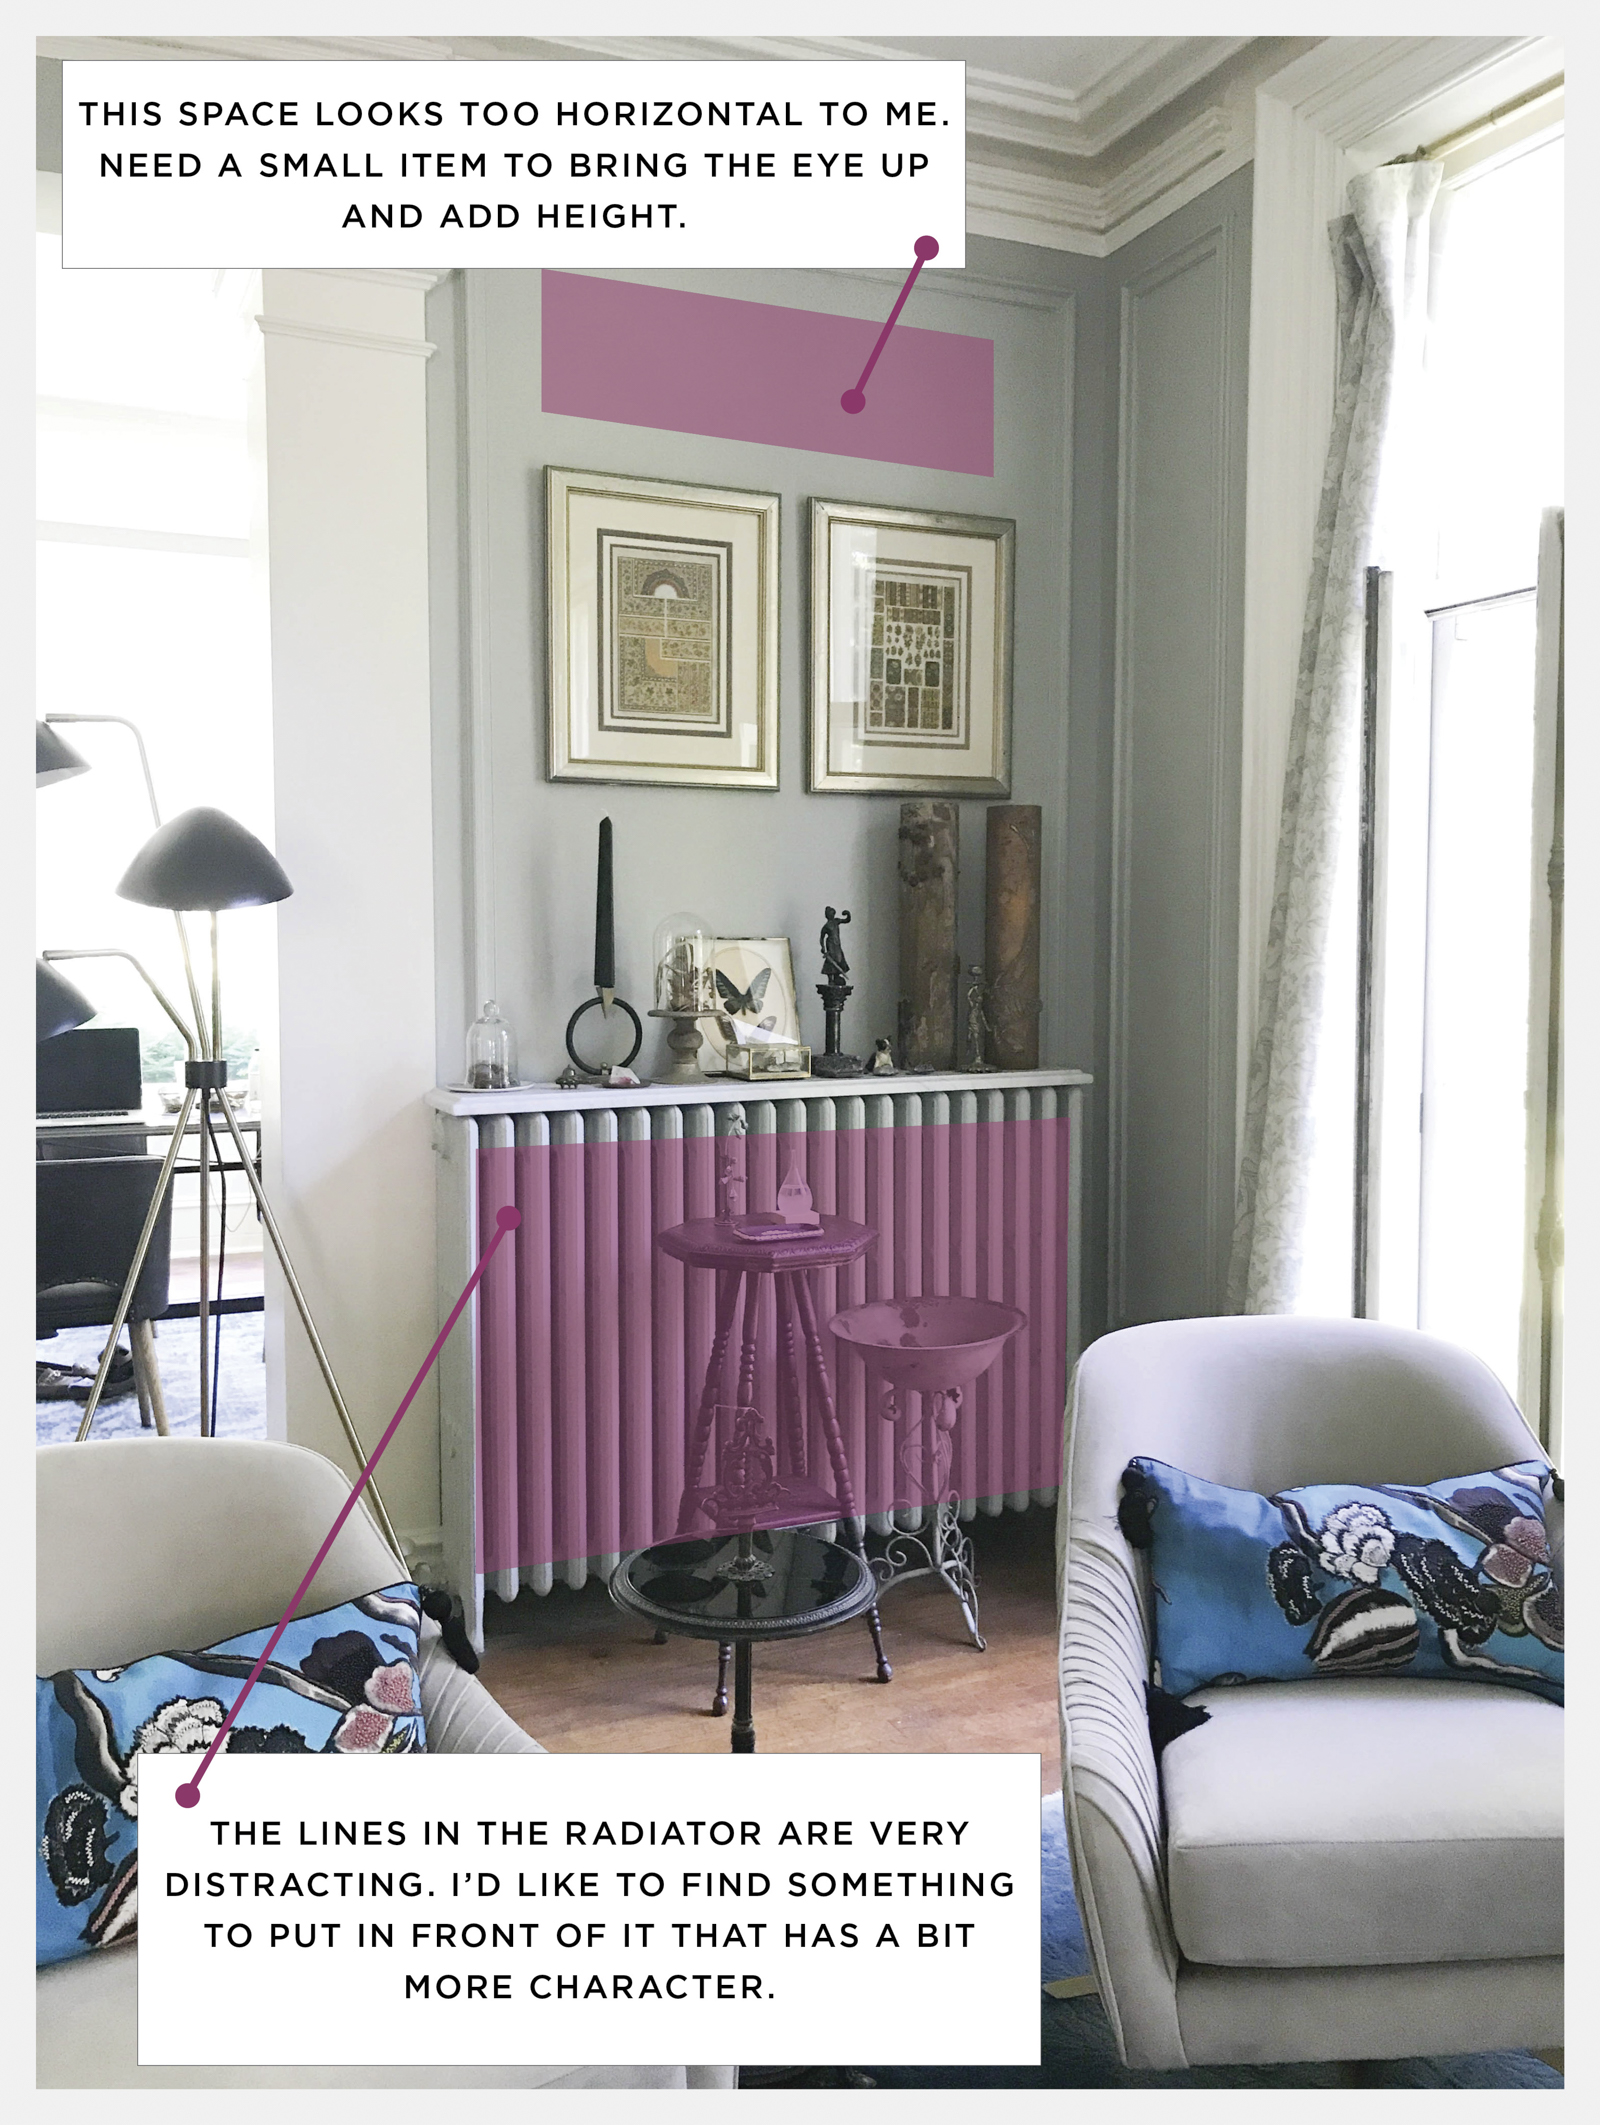 After-The big radiator